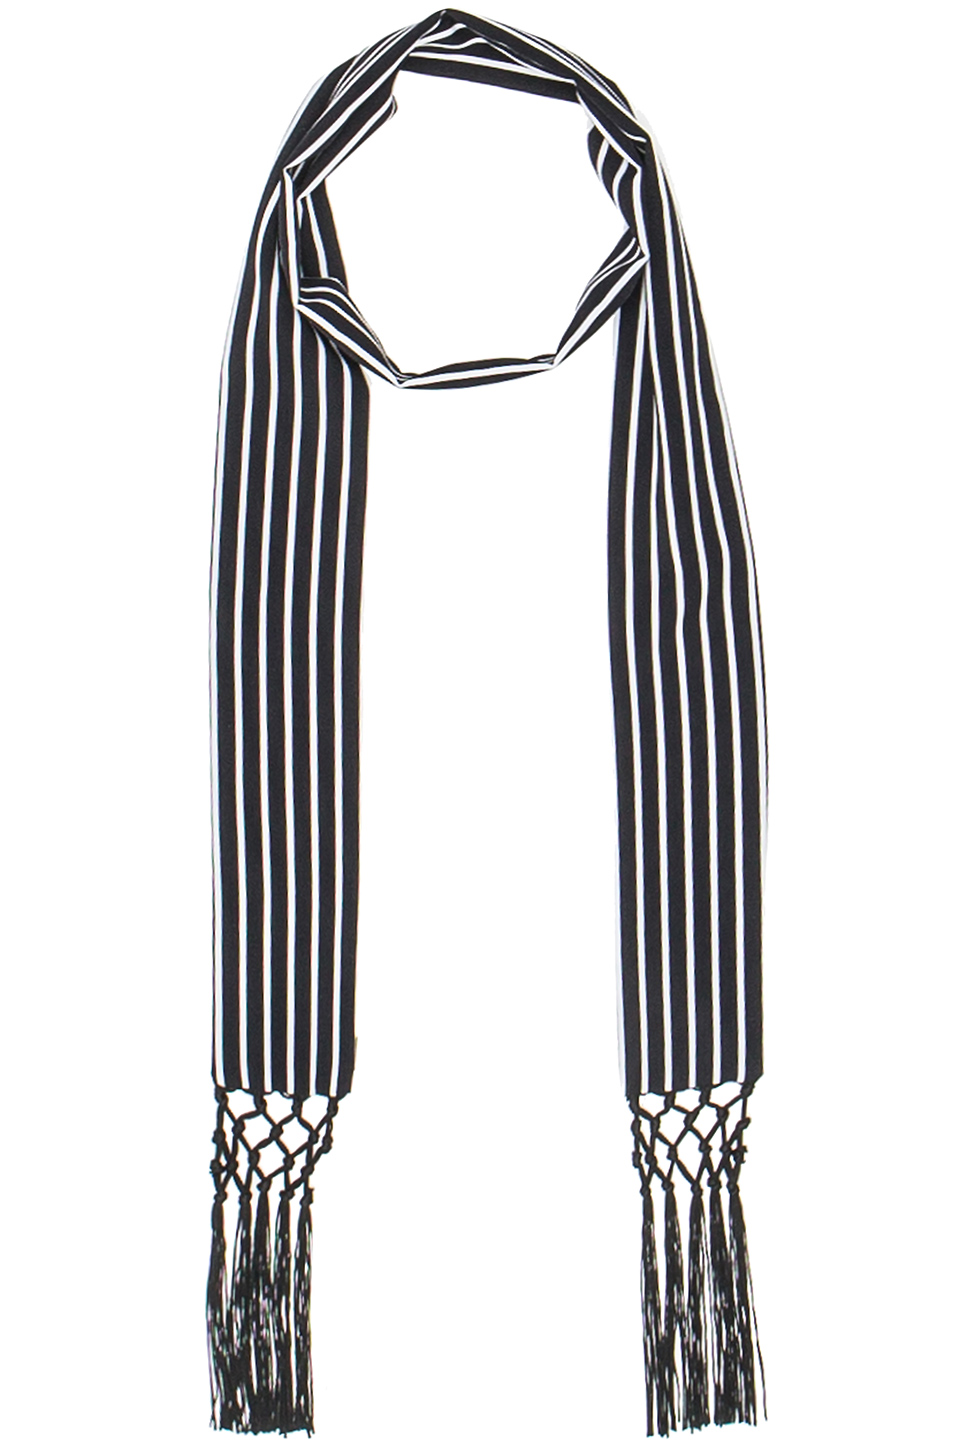 HOUSE OF HARLOW 1960 X REVOLVE 'OSSIE' SCARF